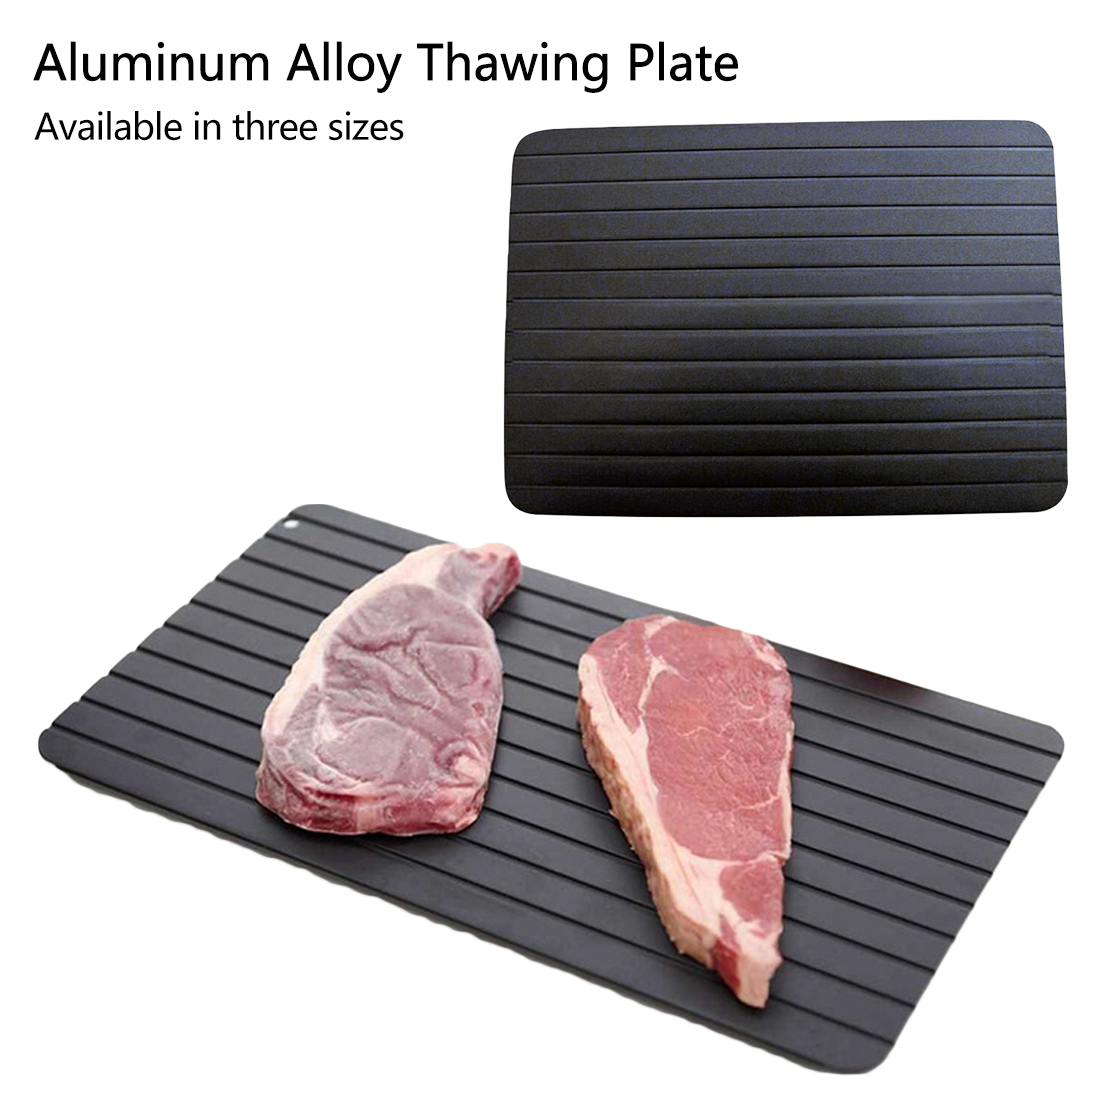 Fast Defrosting Tray Thaw Frozen Food Meat Fruit Quick Defrosting Plate Board Defrost Home Kitchen Gadget Tool image